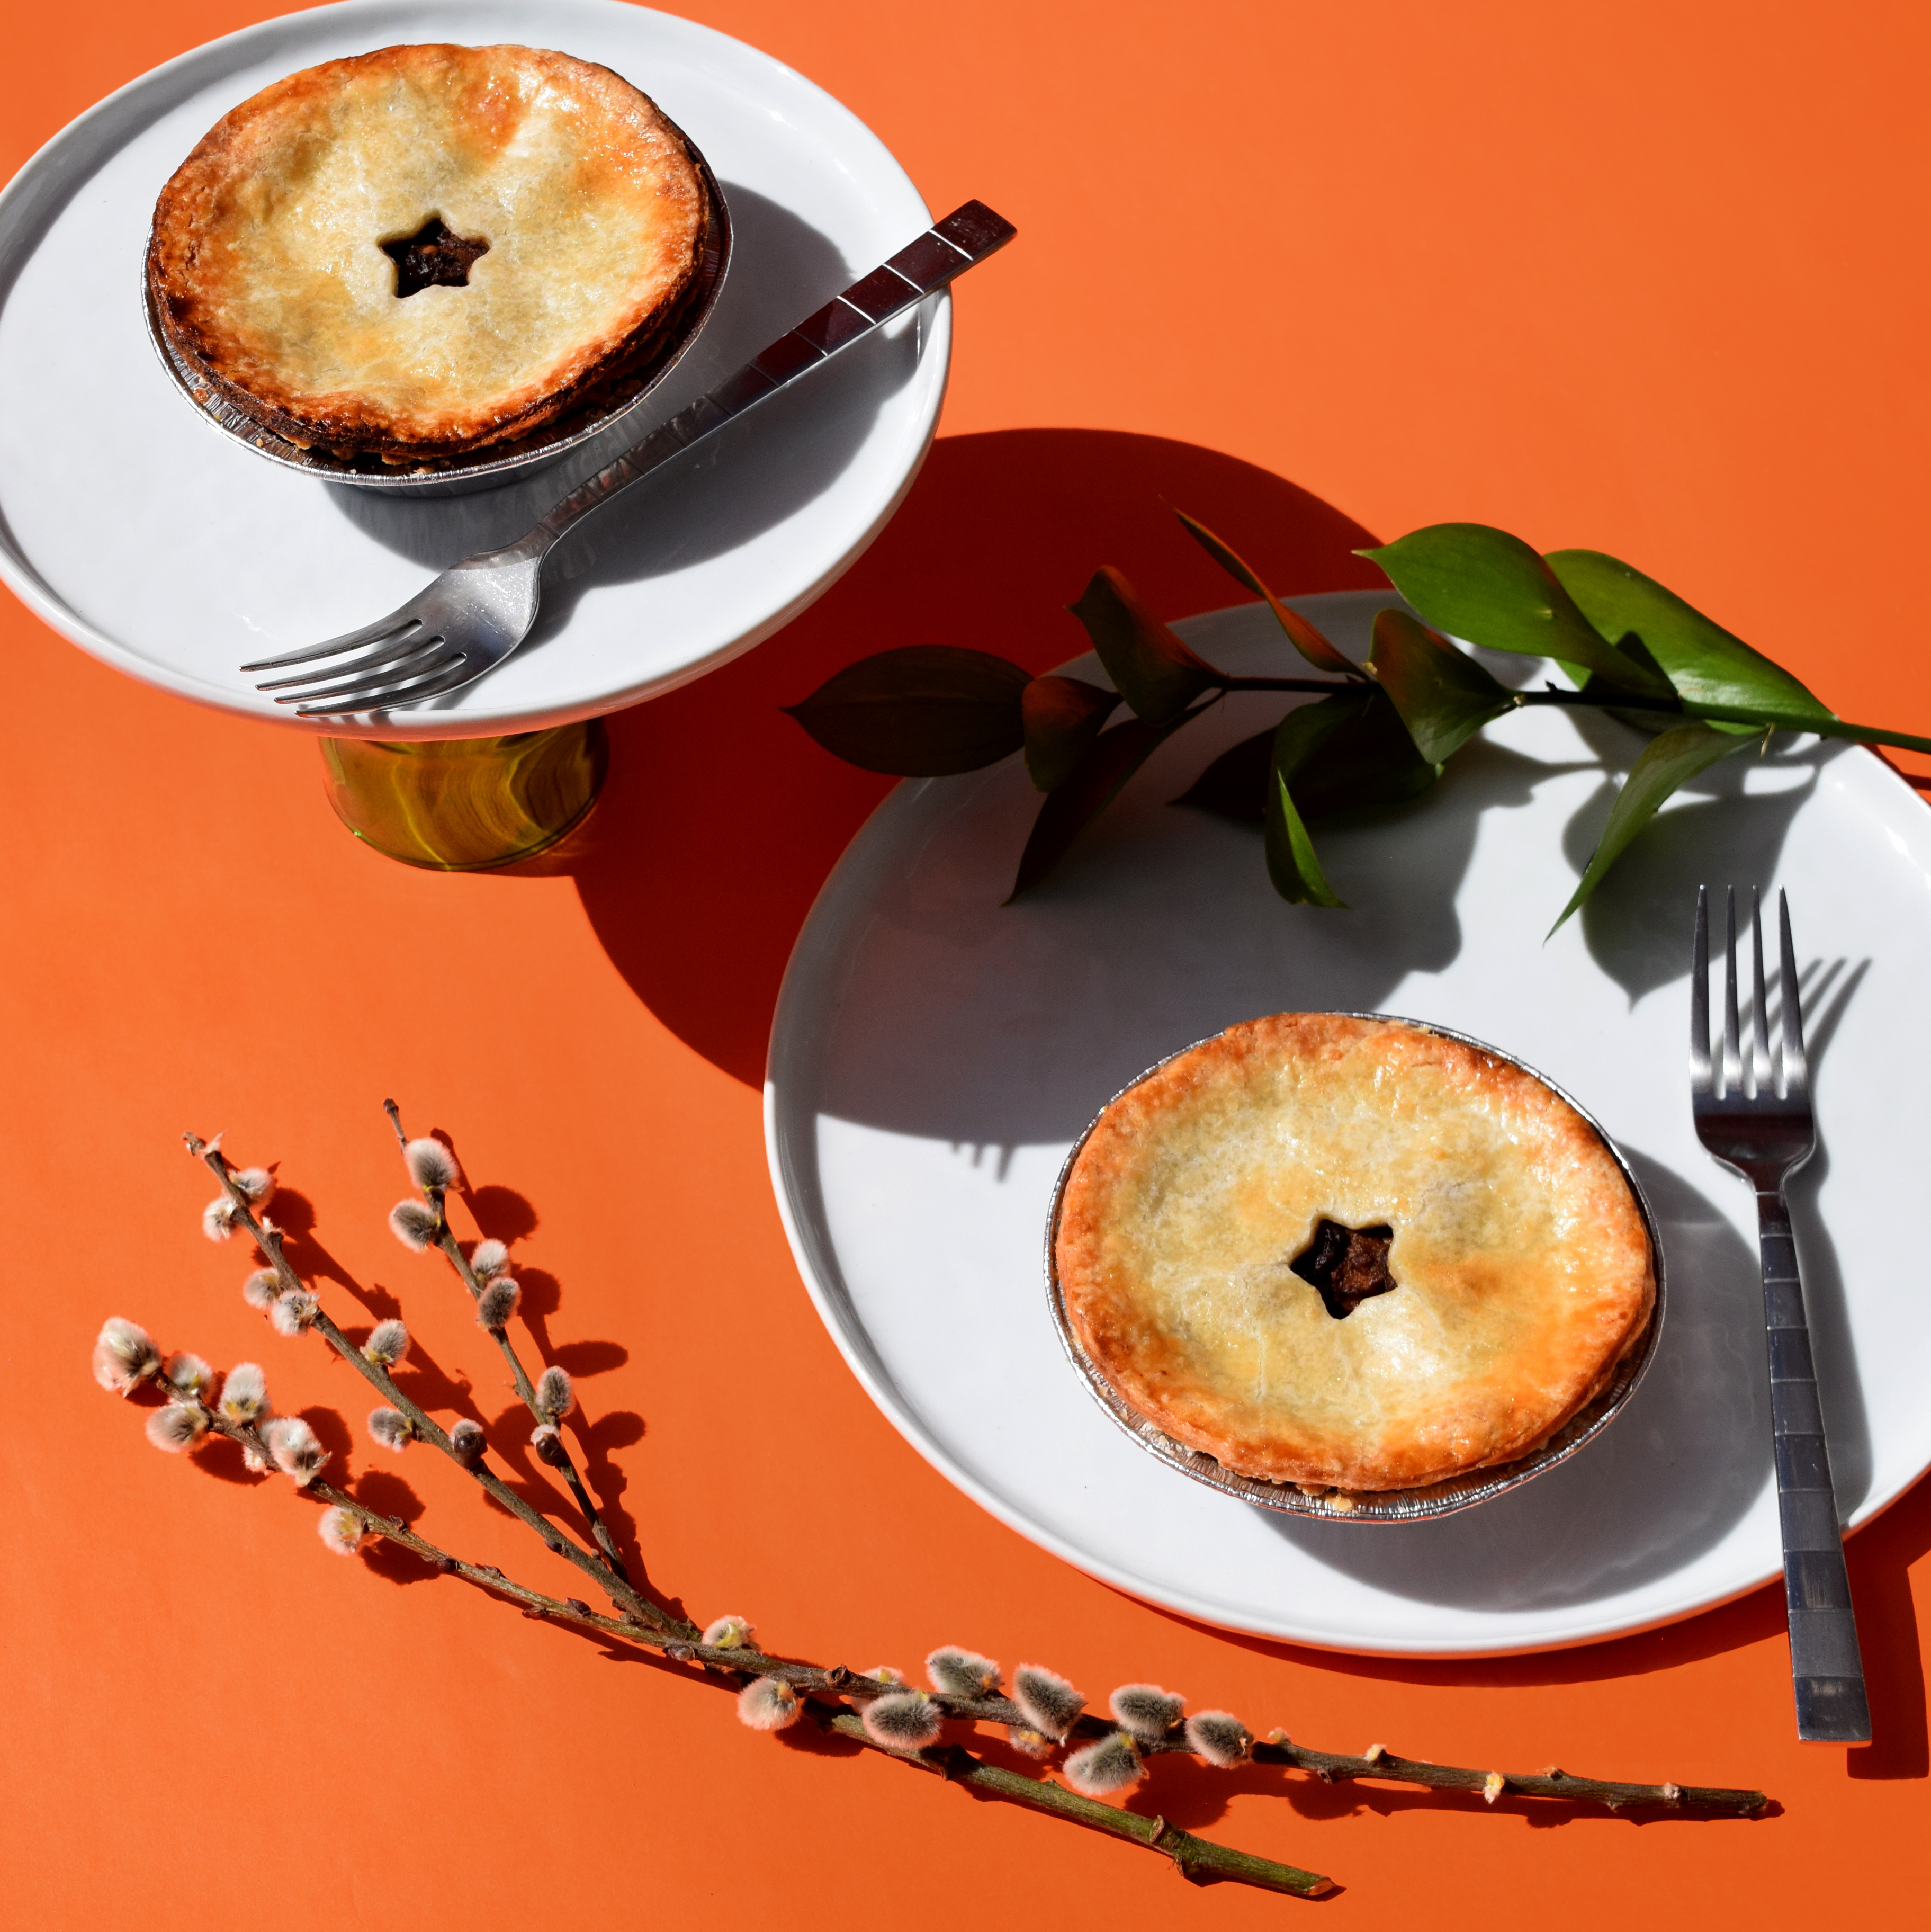 Two pot pies sit on plates on an orange table. The pies were made by Alexandria Guevarra of Allie G's Pastries, the Portland-based Filipino American pop-up known for its savory and sweet Filipino baked goods.